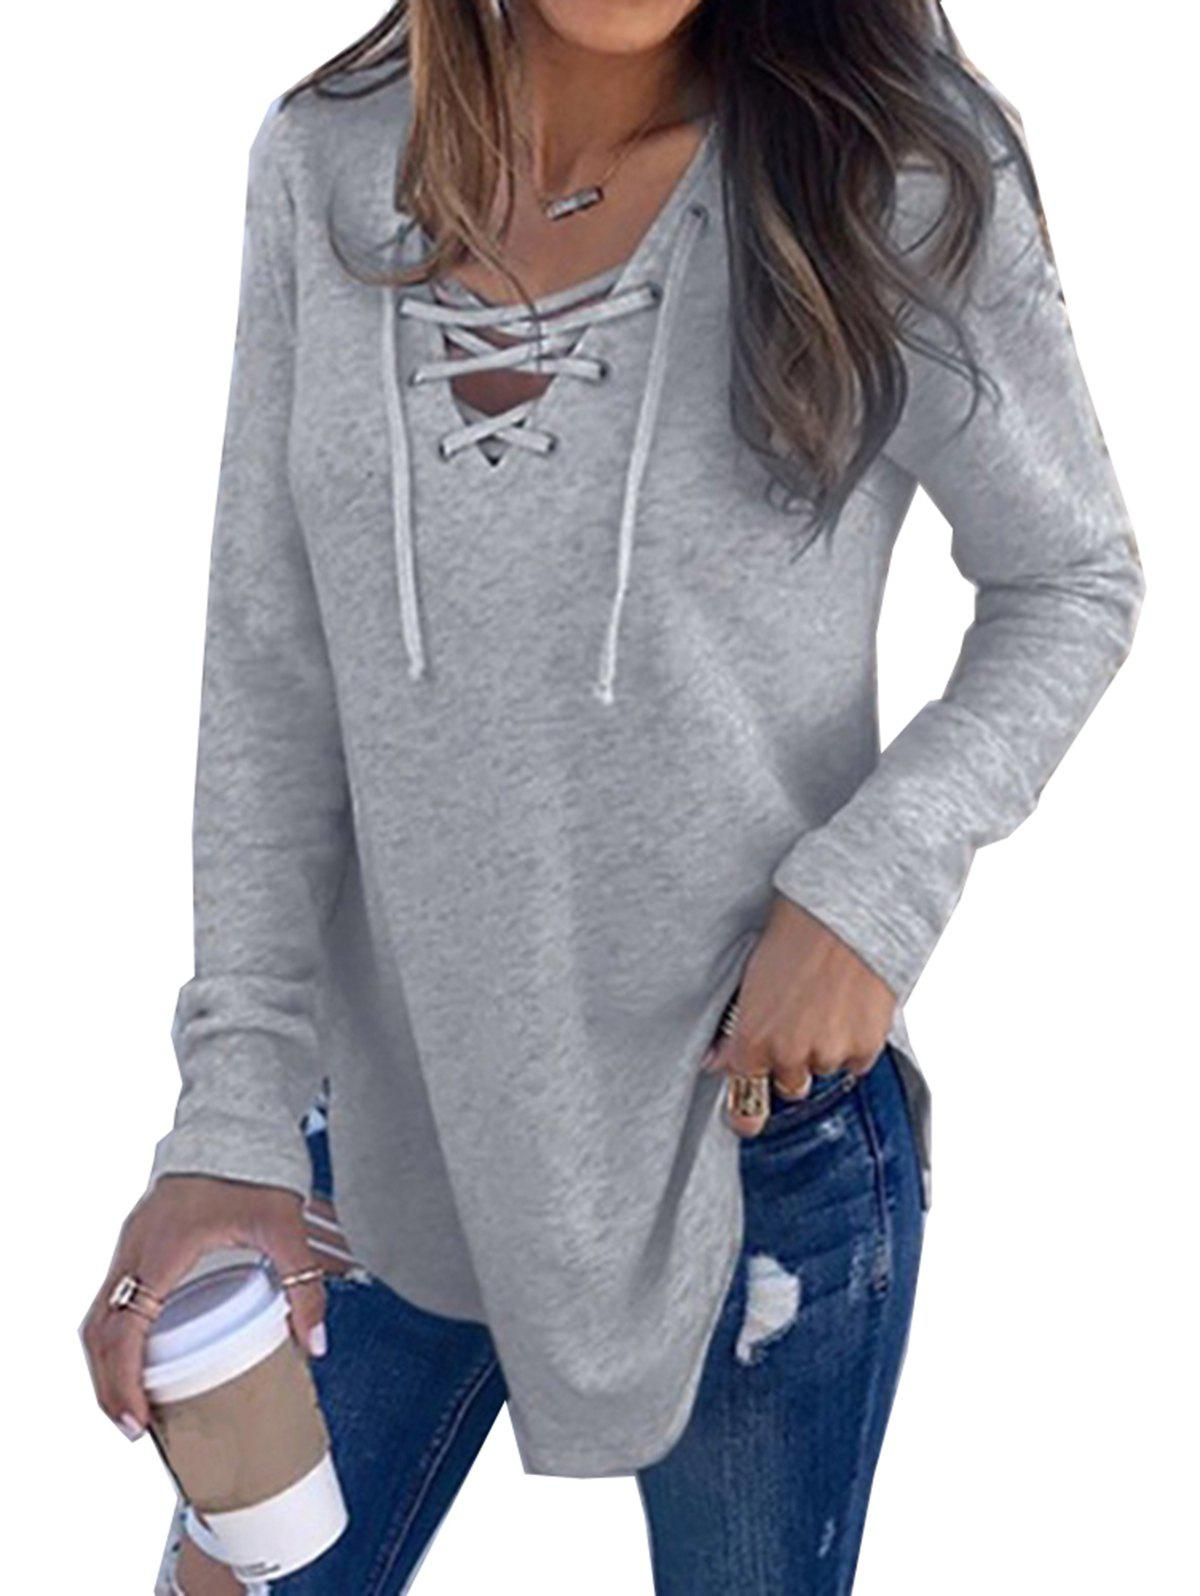 Women V Neck Long Sleeve Loose Casual Knit Sweaters Pullover Tops, Gray